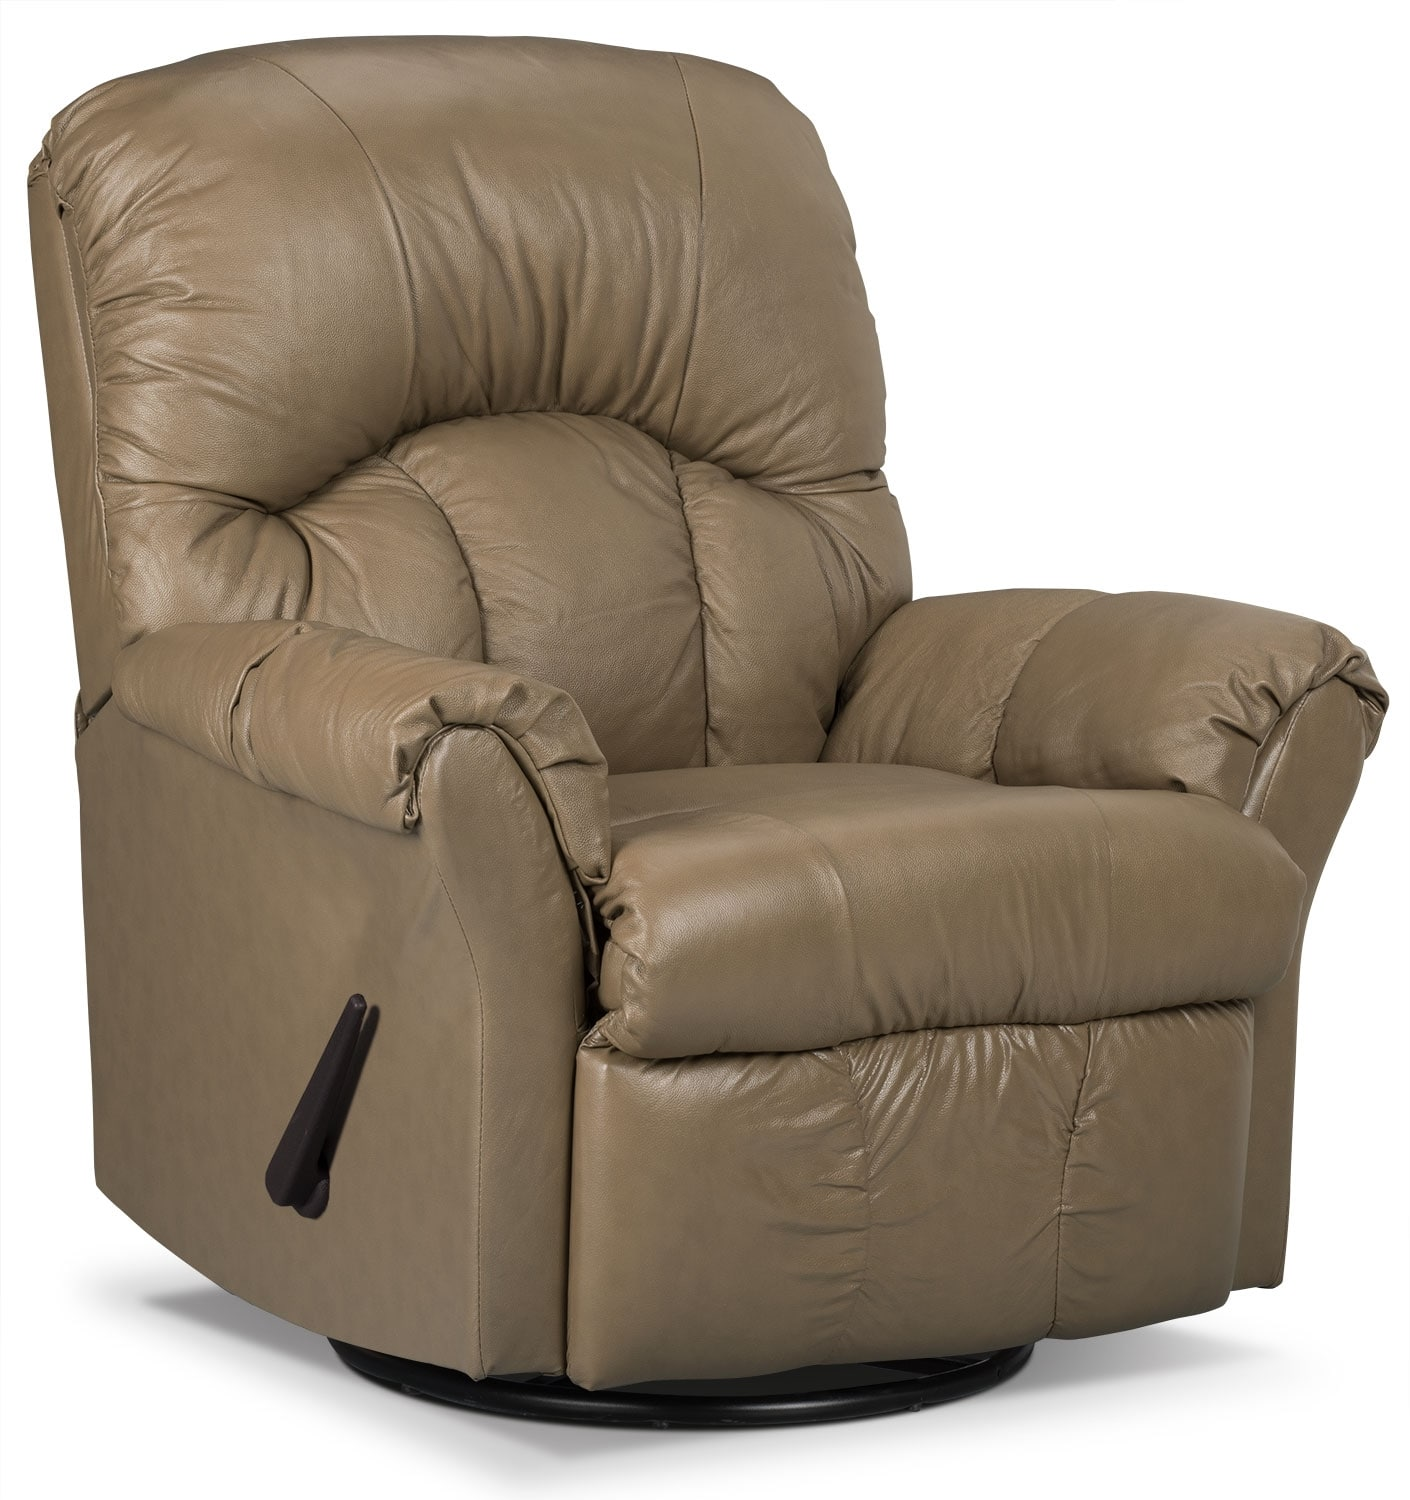 Living Room Furniture - Designed2B Recliner 6734 Genuine Leather Swivel Glider Chair - Buff